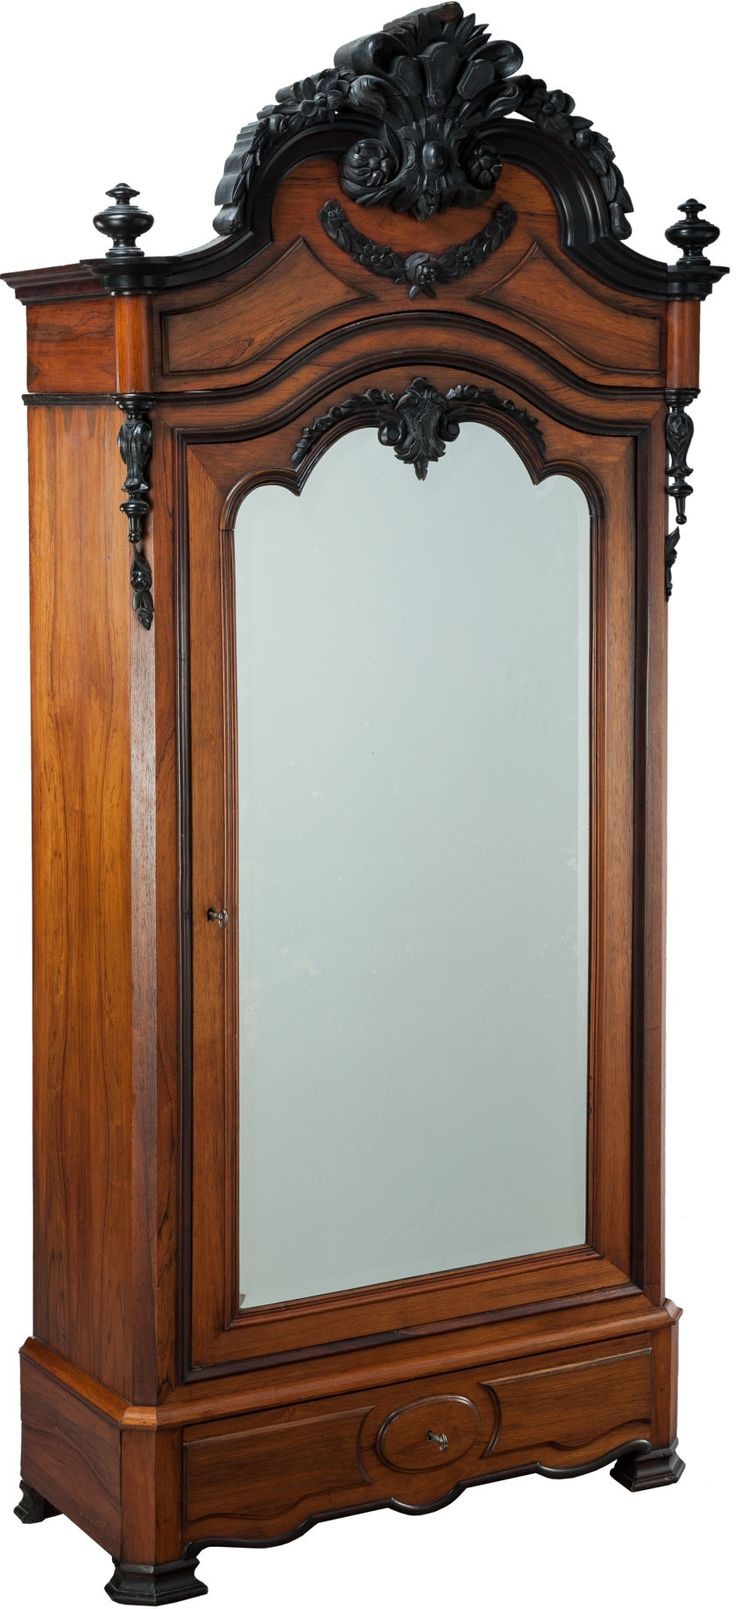 64 Best Victorian Furniture Images On Pinterest Antique